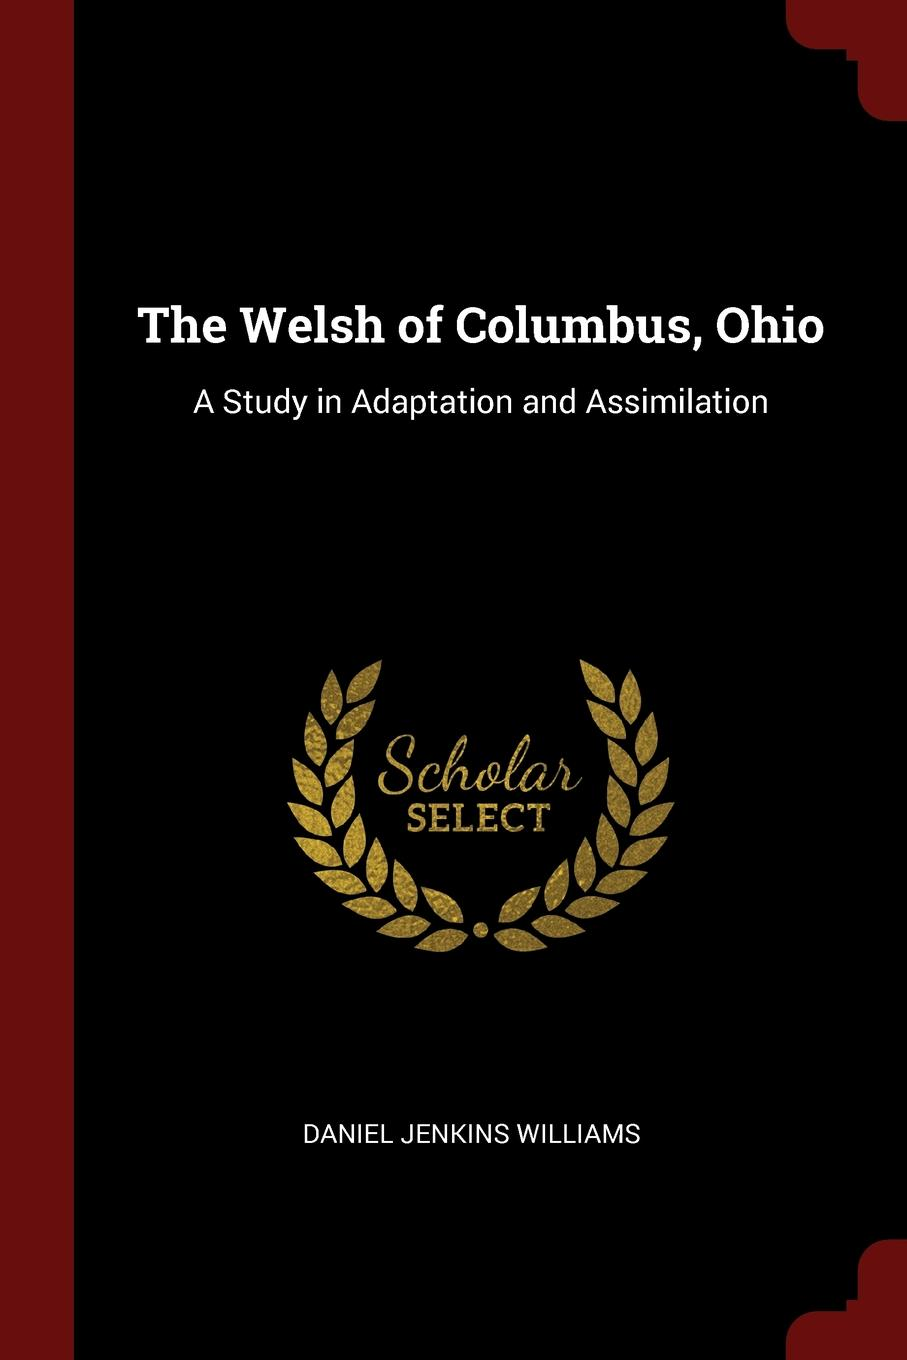 Daniel Jenkins Williams The Welsh of Columbus, Ohio. A Study in Adaptation and Assimilation